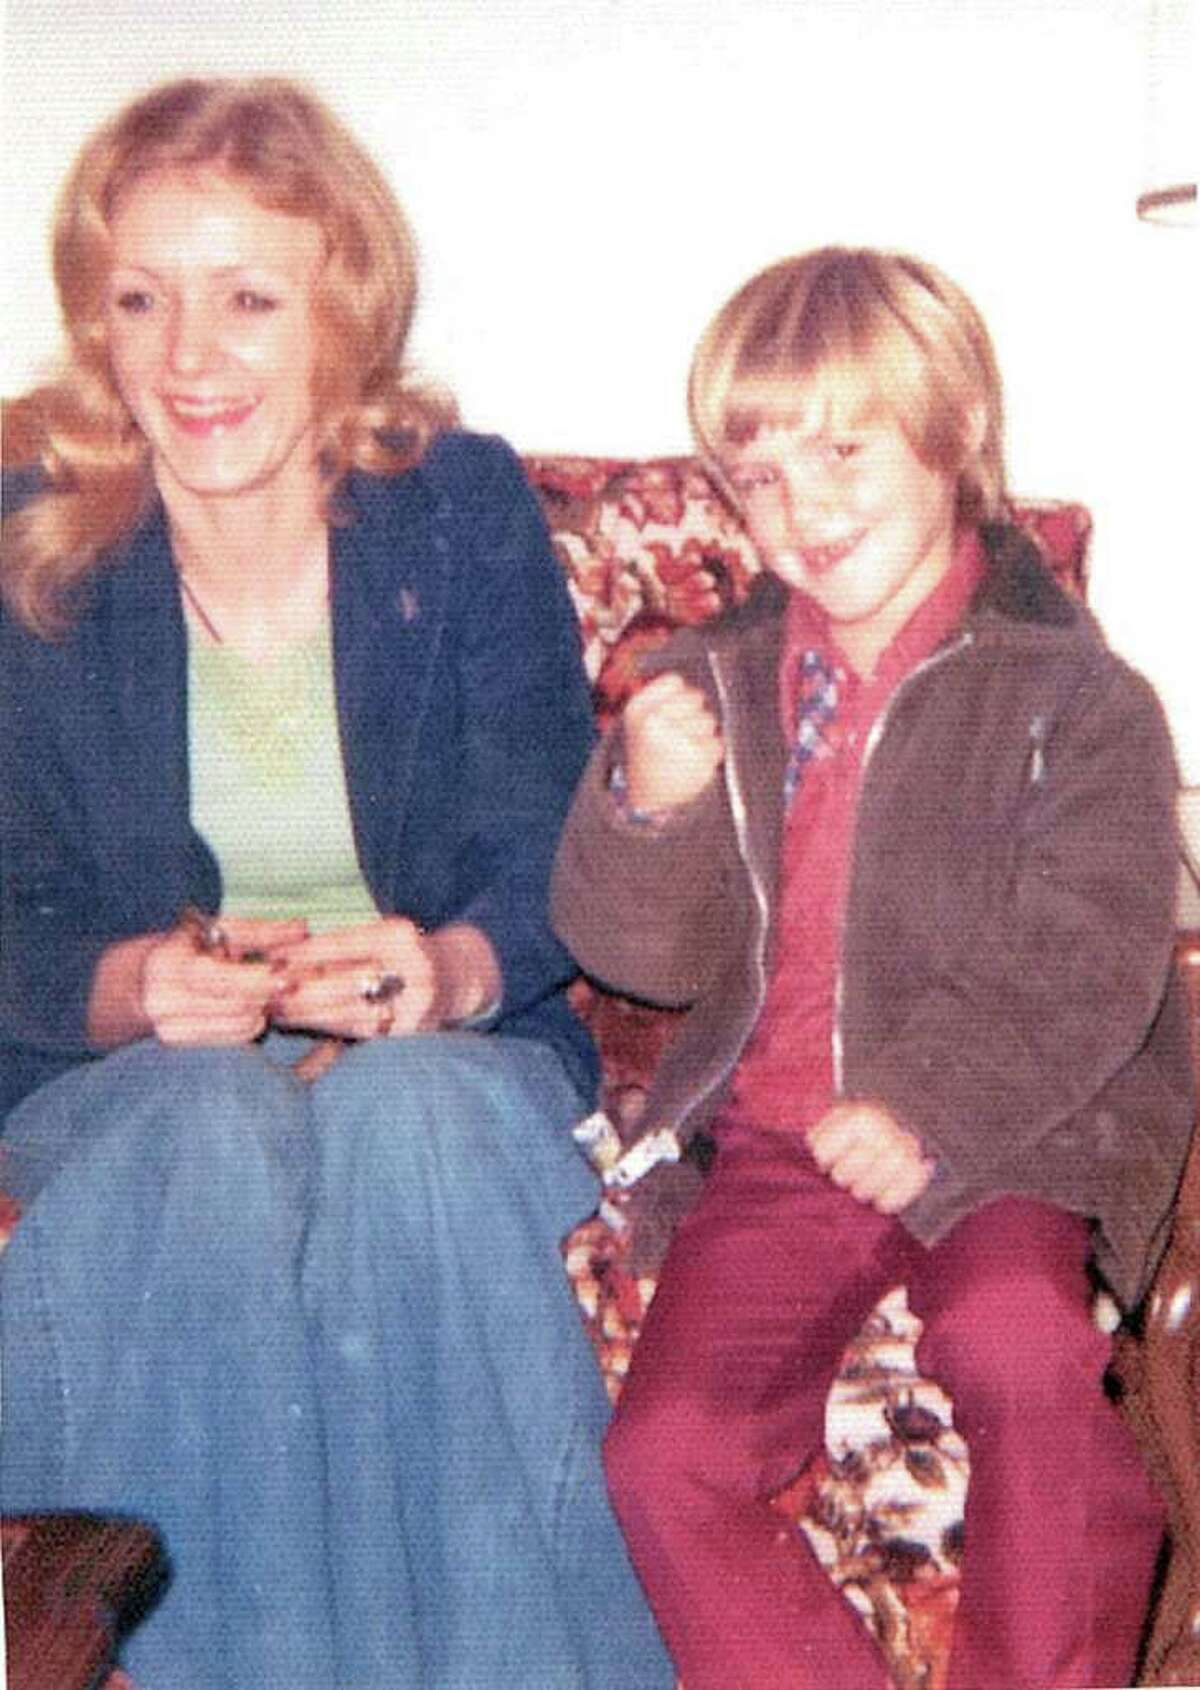 A murder victim who has just been identified as Gloria Faye Stringer is seen in a photograph with her son Dan Moore. The picture was taken shortly before she disappeared in 1975.